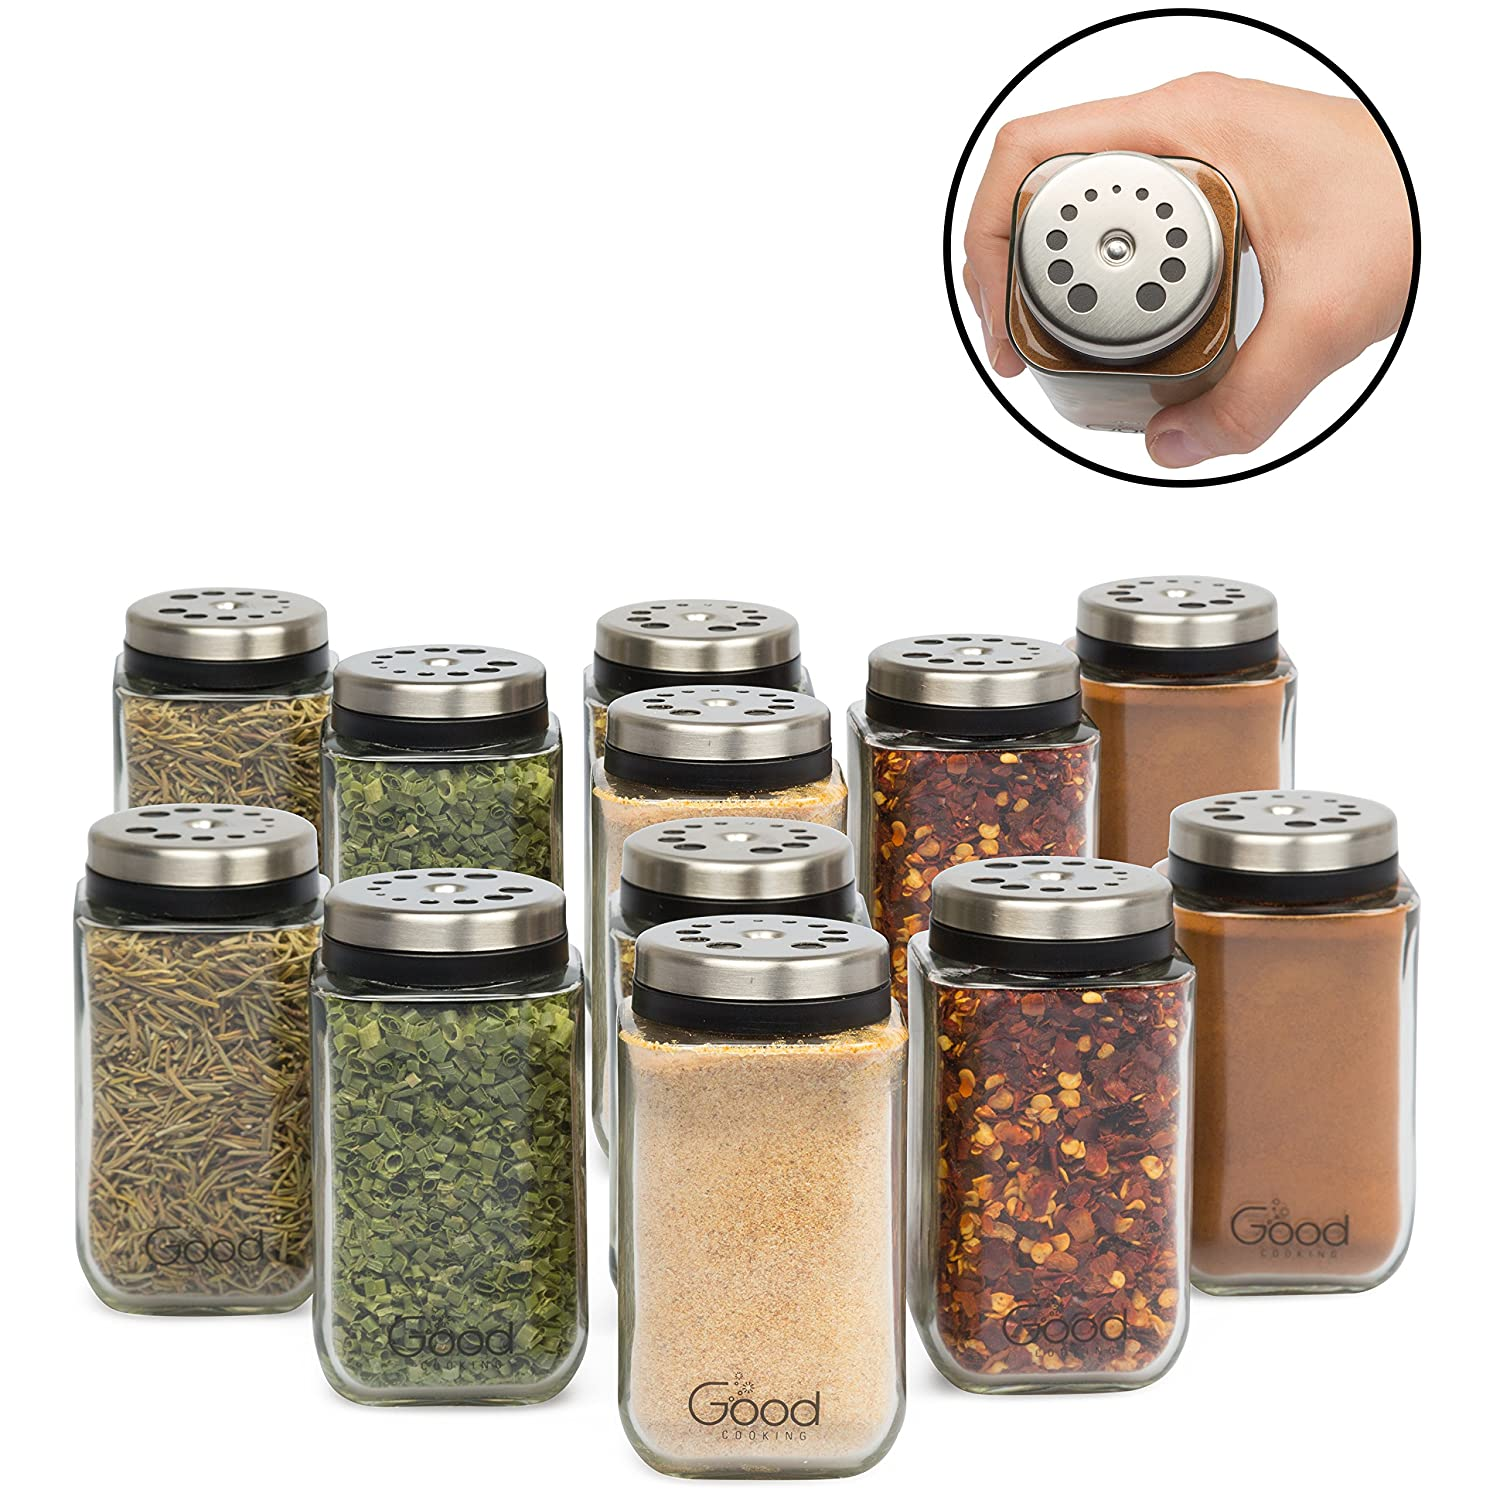 Adjustable Glass Spice Jars- Set of 6 Seasoning Shaker Rub Container Tins with 6 Pouring Sizes Good Cooking